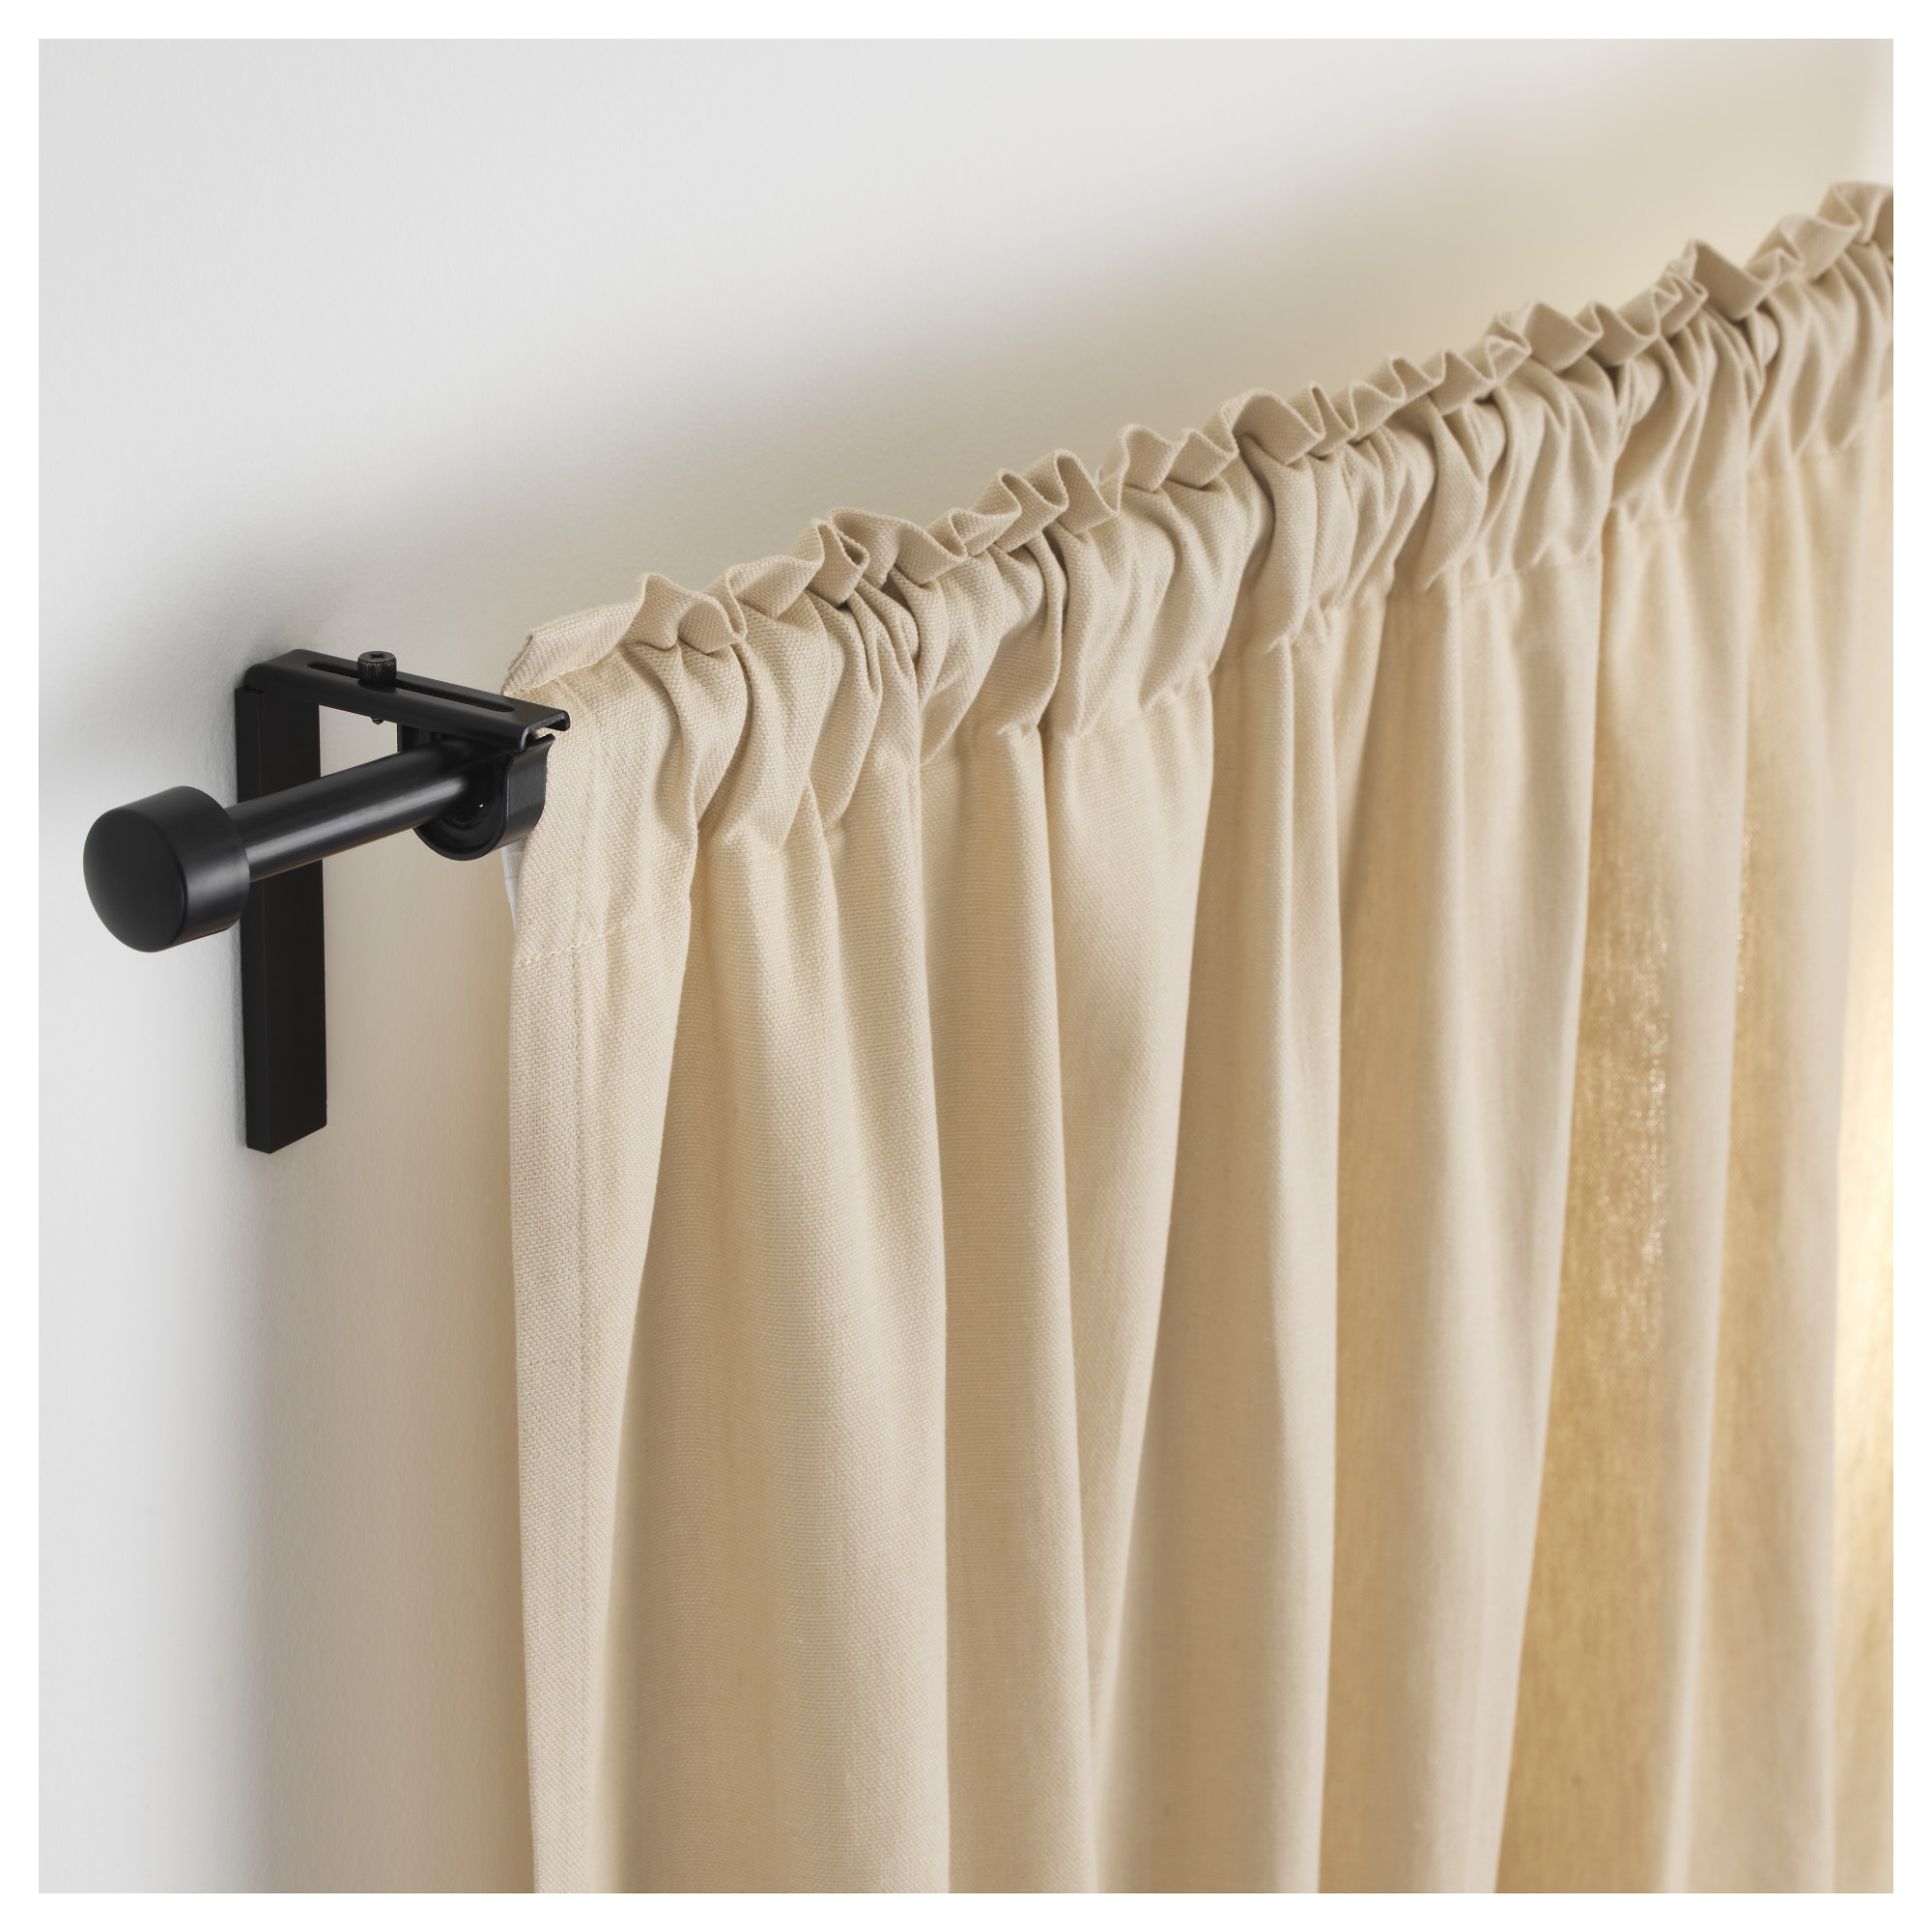 Mini curtain rods - R Cka Curtain Rod Combination Black Min Length 47 1 4 Max